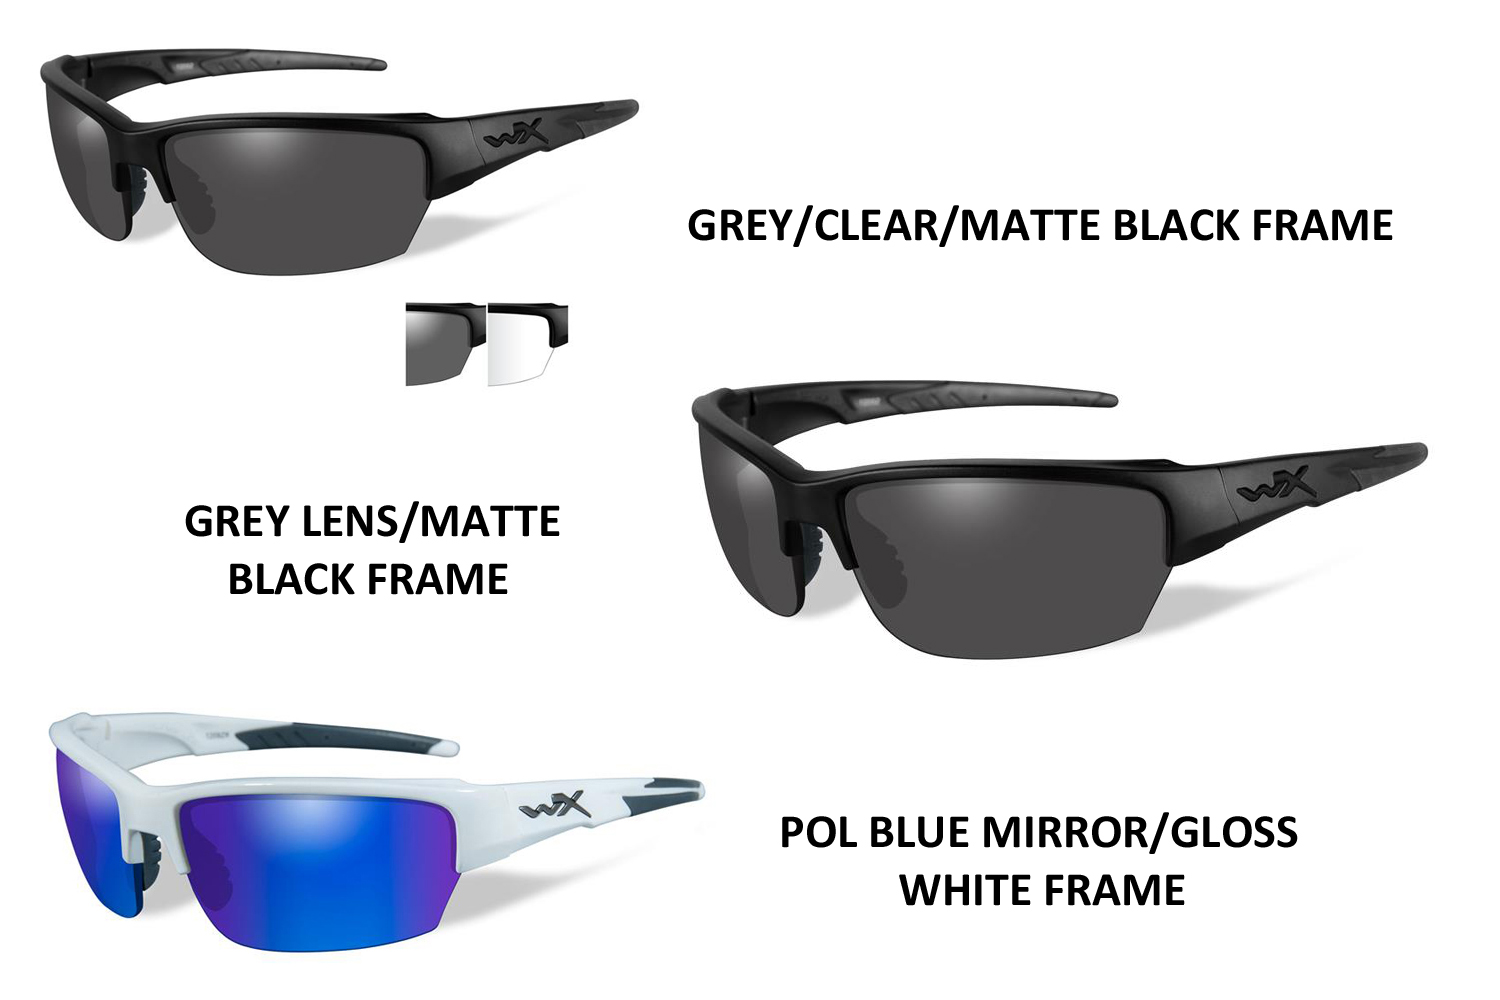 5417c9acfe Wiley X Saint Multi-colored Lens and Frame Sunglasses are the Rx ...